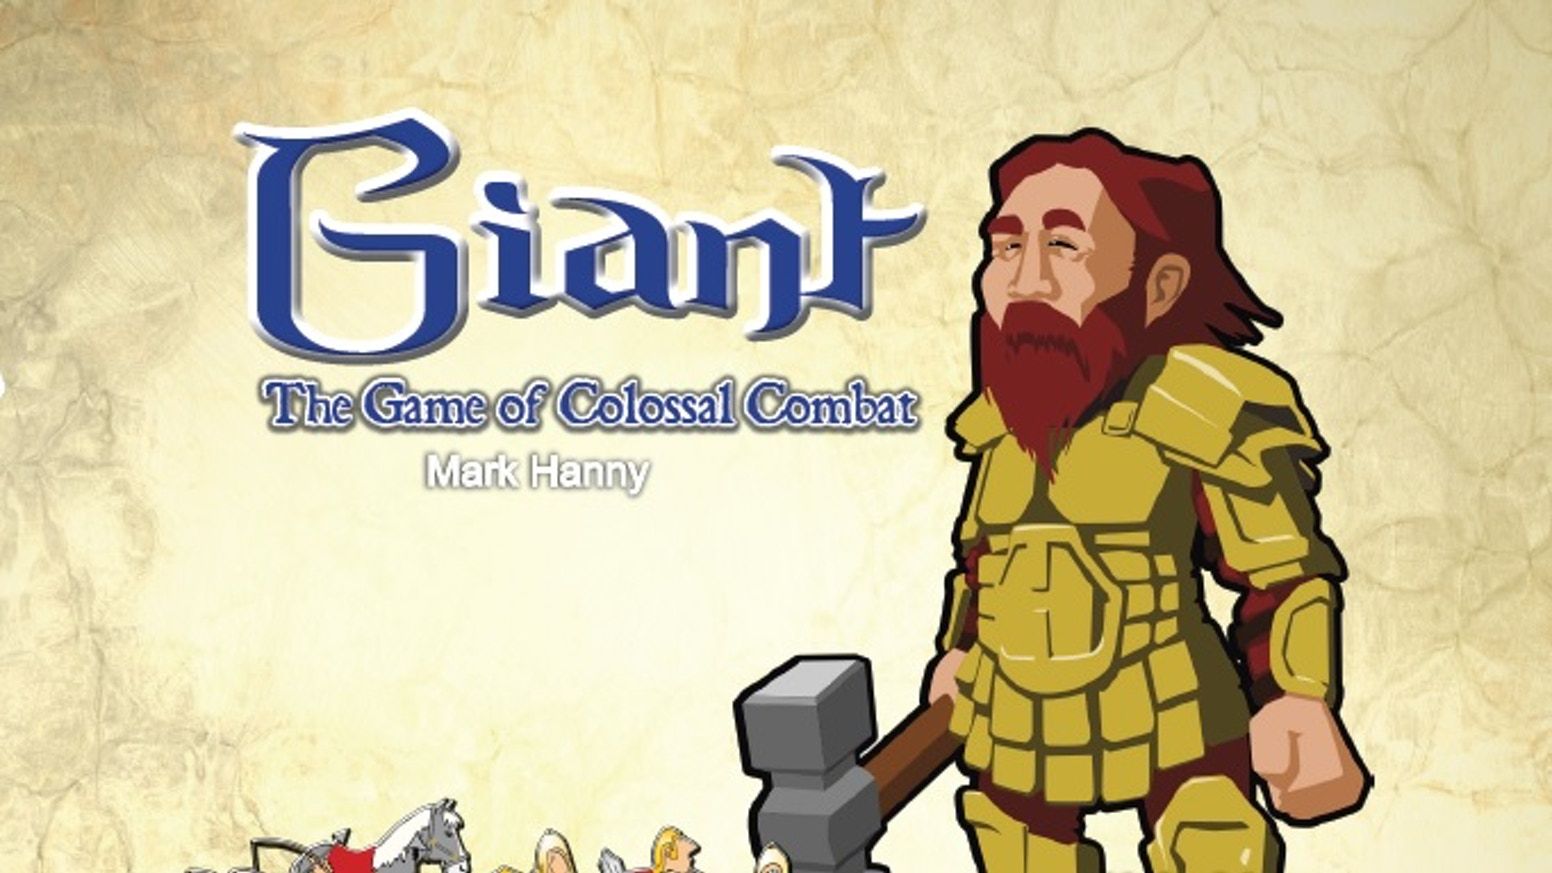 Giant - the game of colossal combat! by Joe Magic Games » Meet Me at